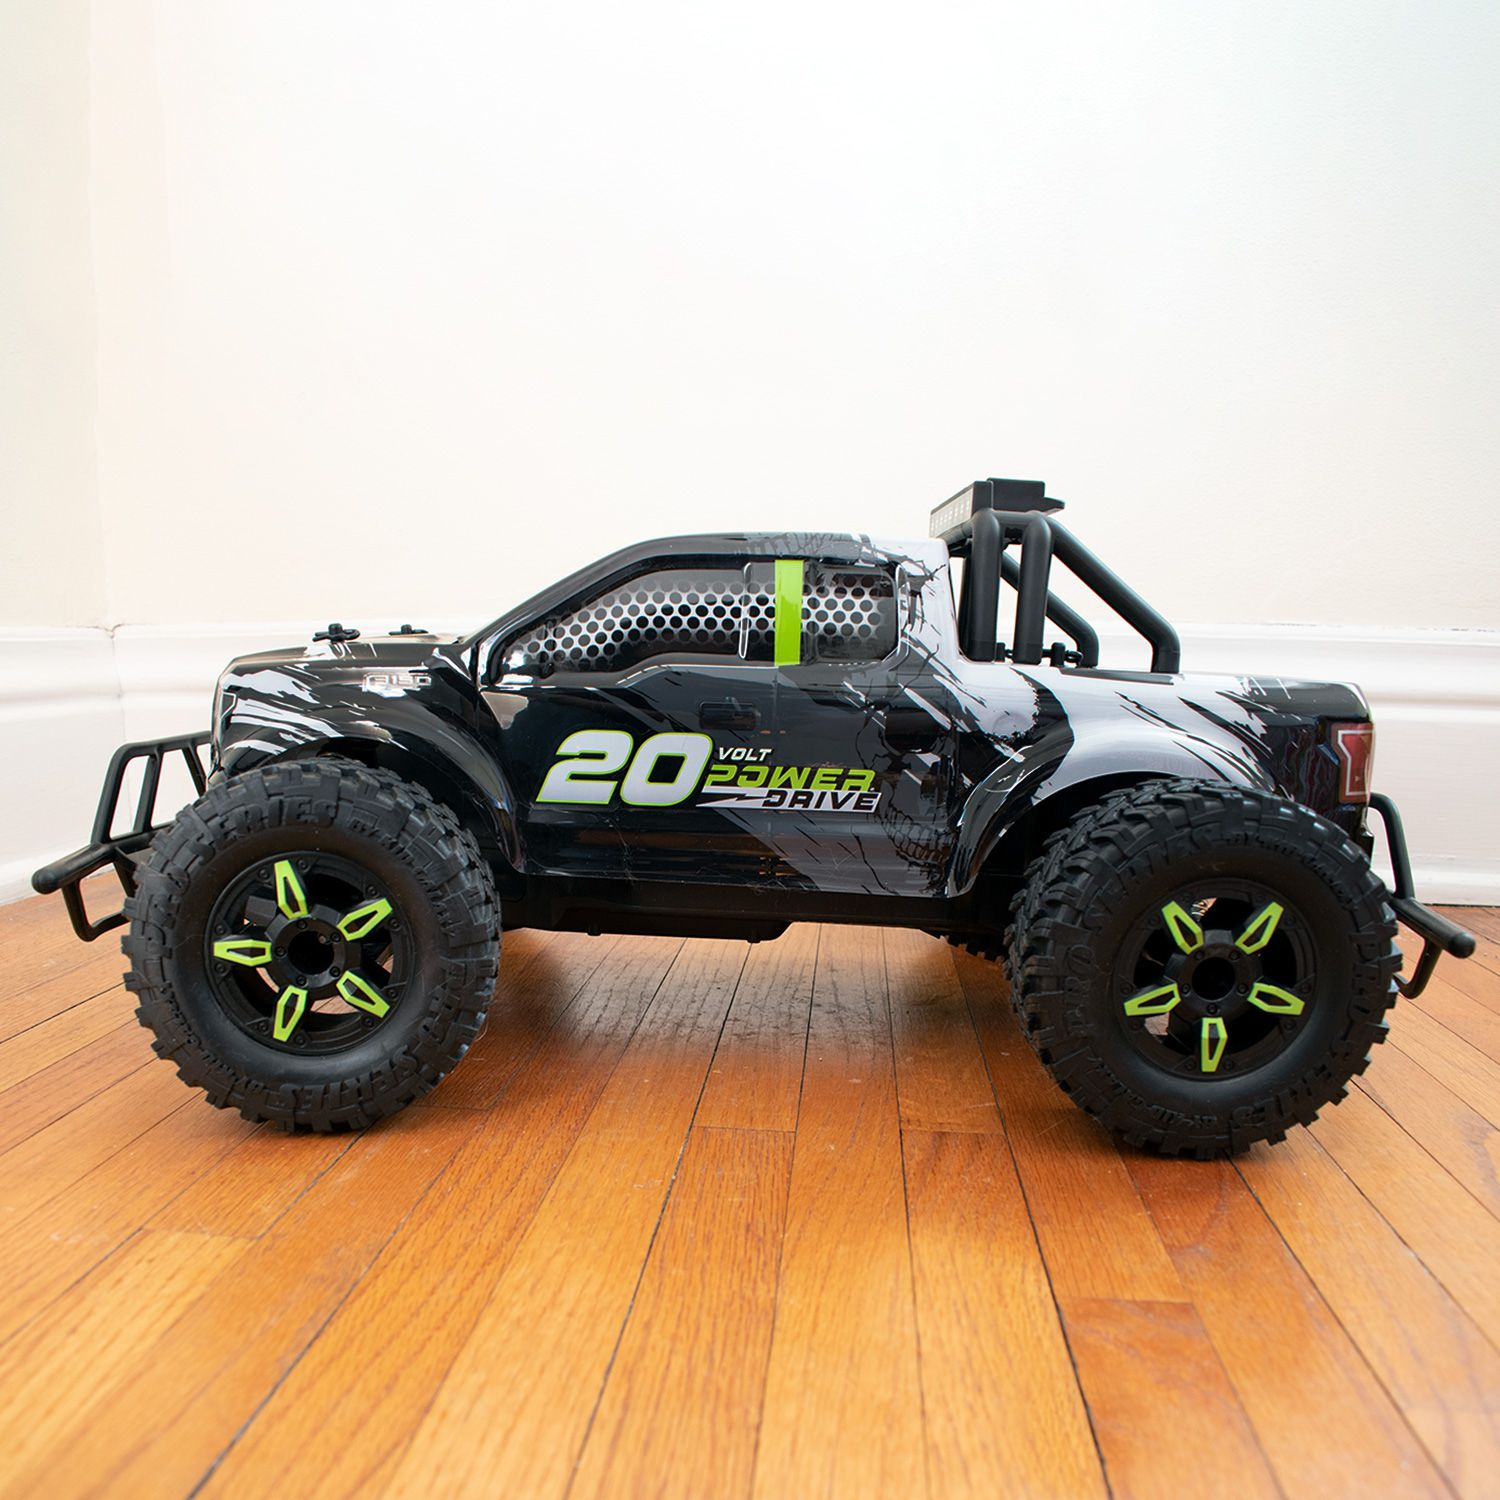 Ford F150 Accessories >> Galaxy Ford f150 Remote Control Truck Review: An RC truck ...